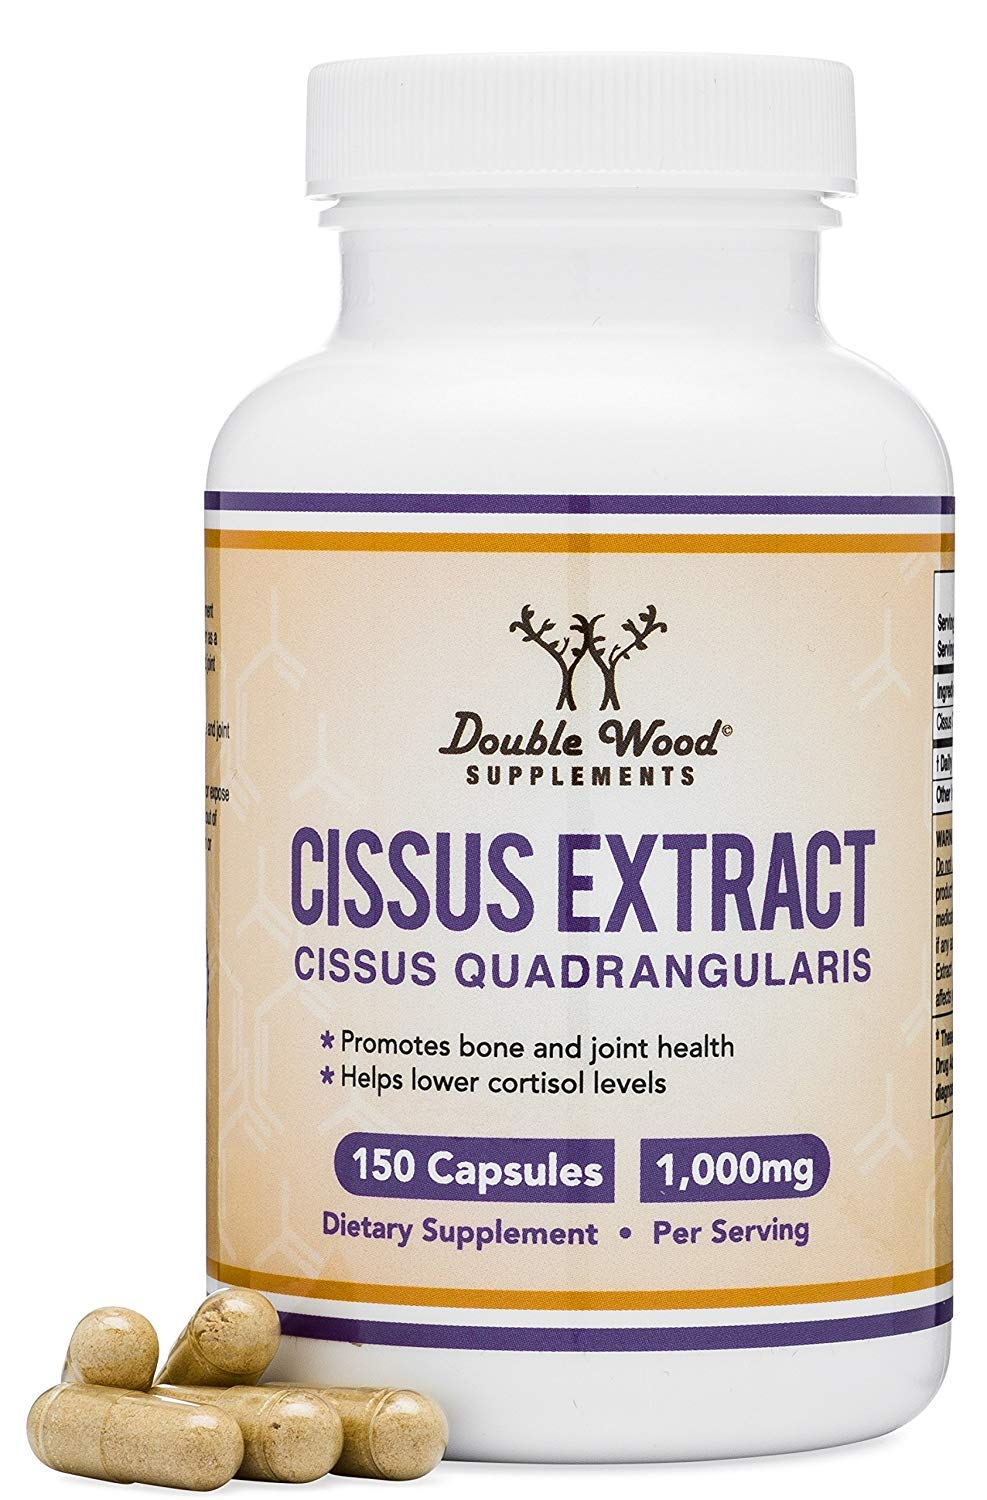 Cissus Quadrangularis Super Extract, 150 Capsules, Made in The USA, Dietary Supplement for Joint and Tendon Pain, 1000mg Serving Size by Double Wood Supplements